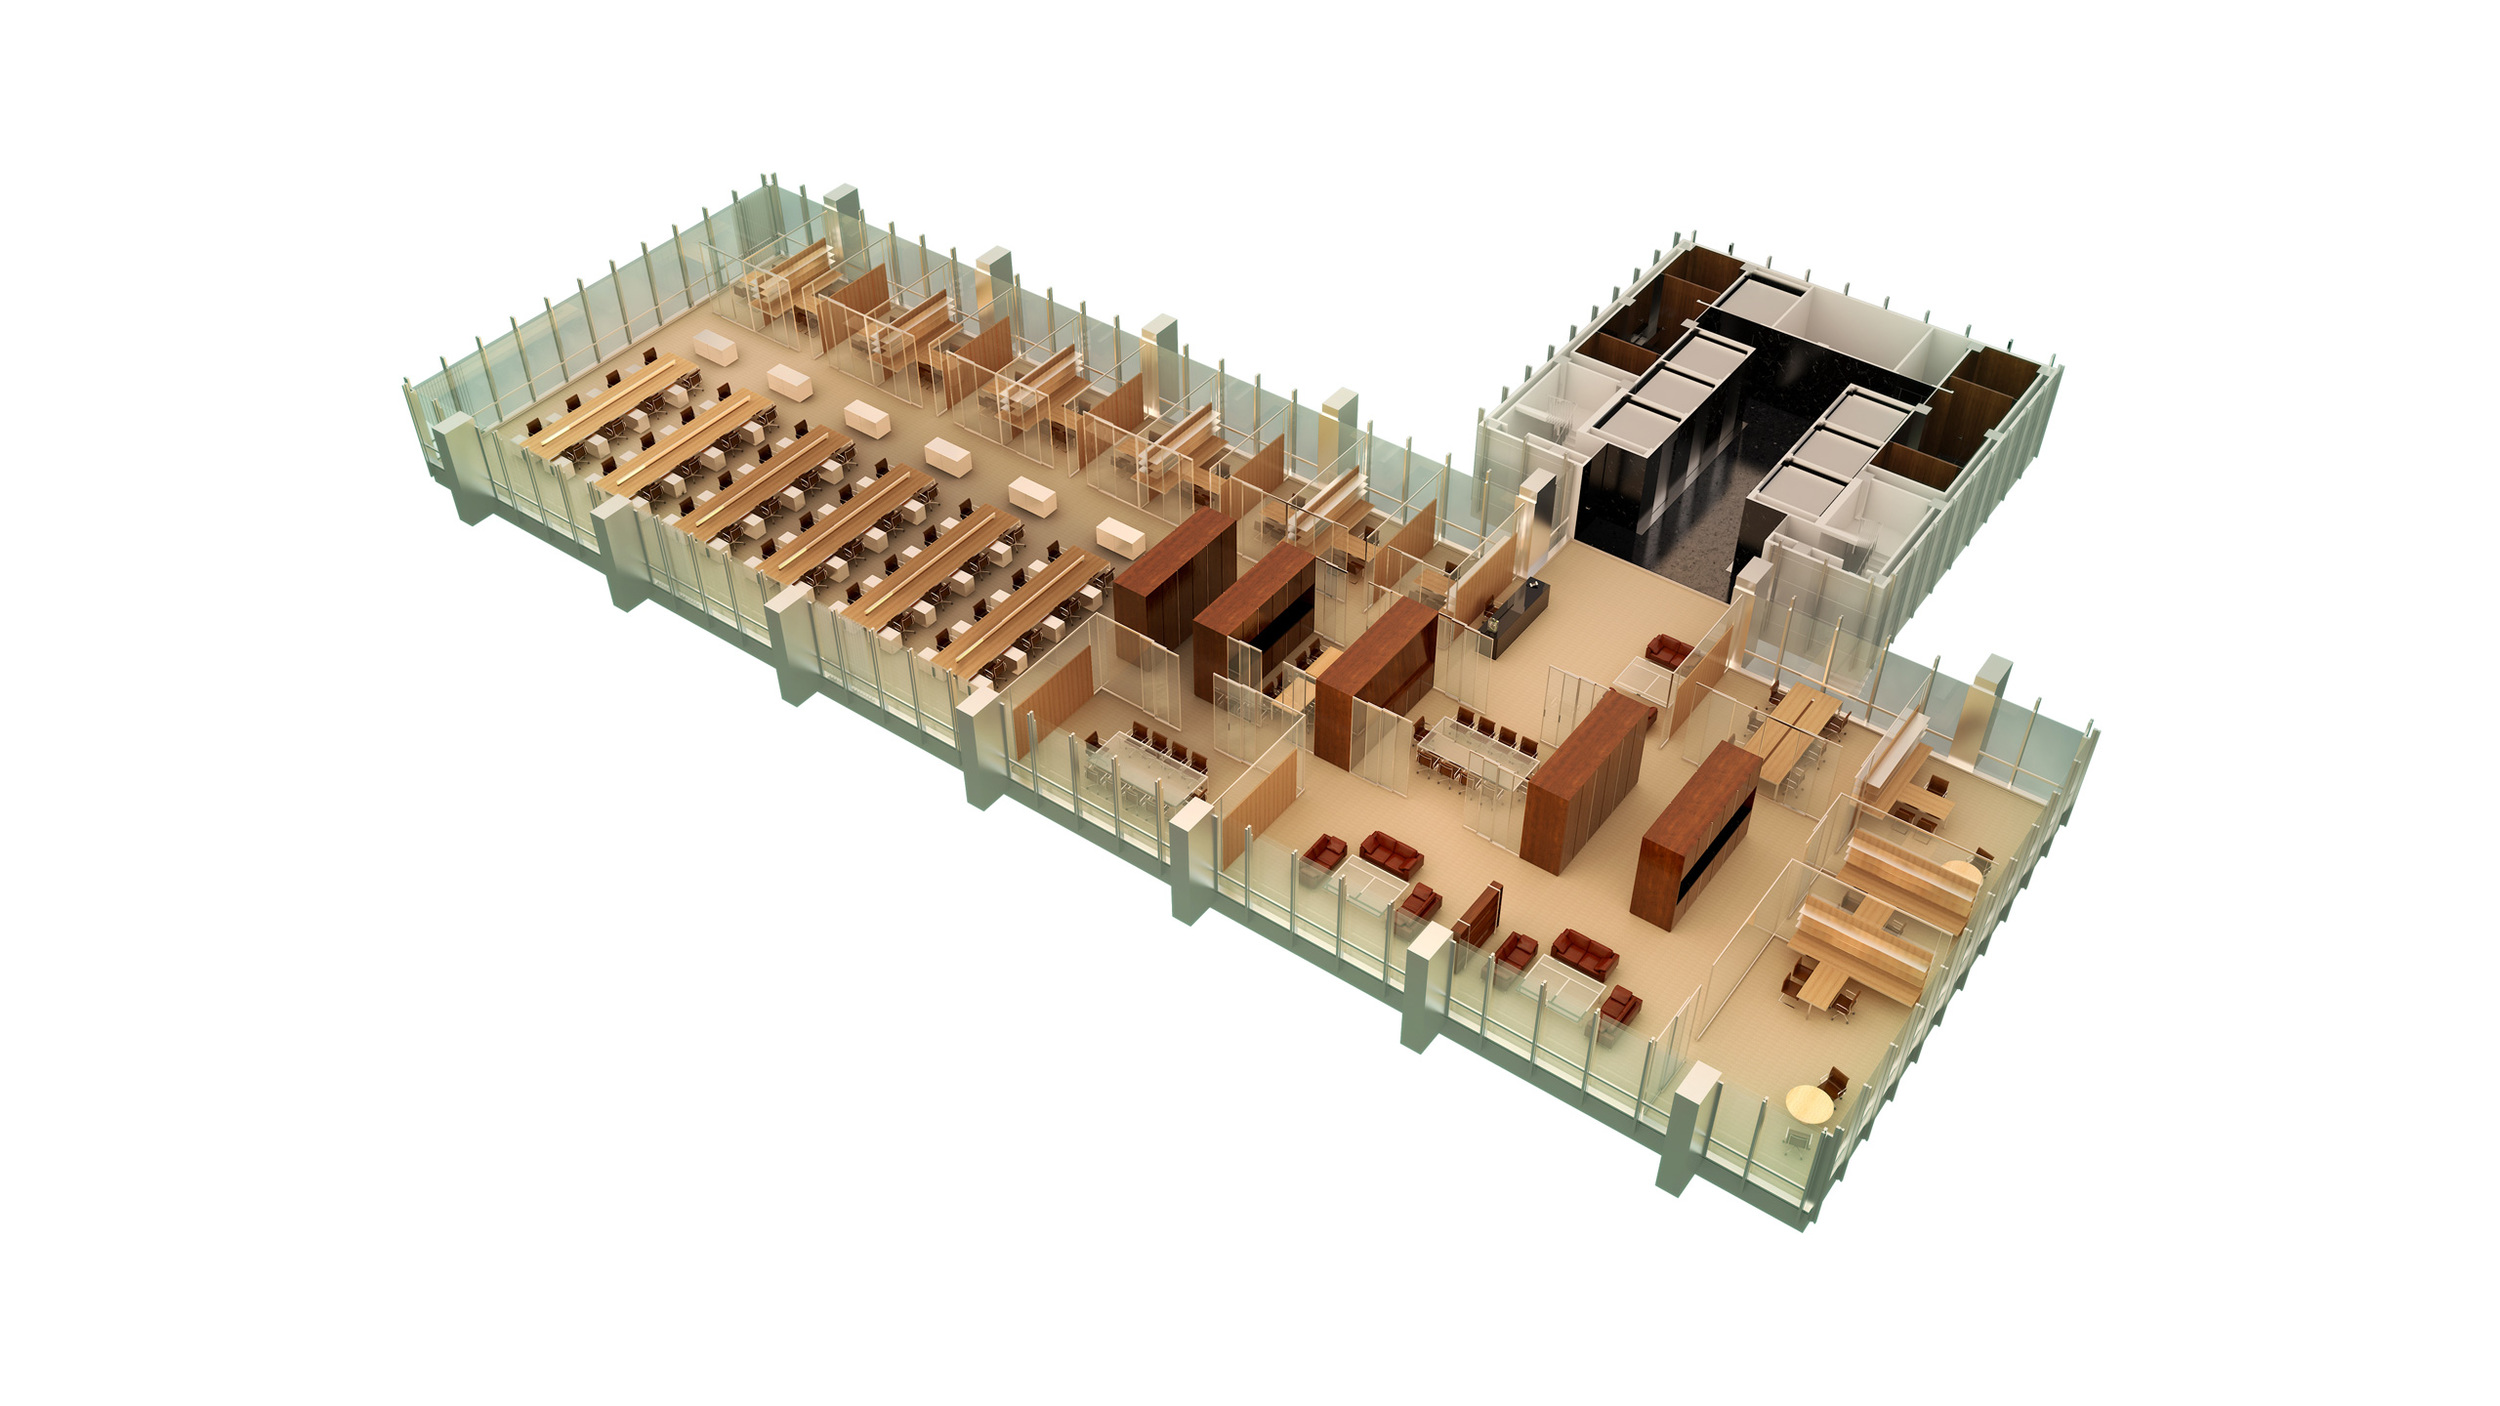 Axonometric Typical Floor Kit of Parts